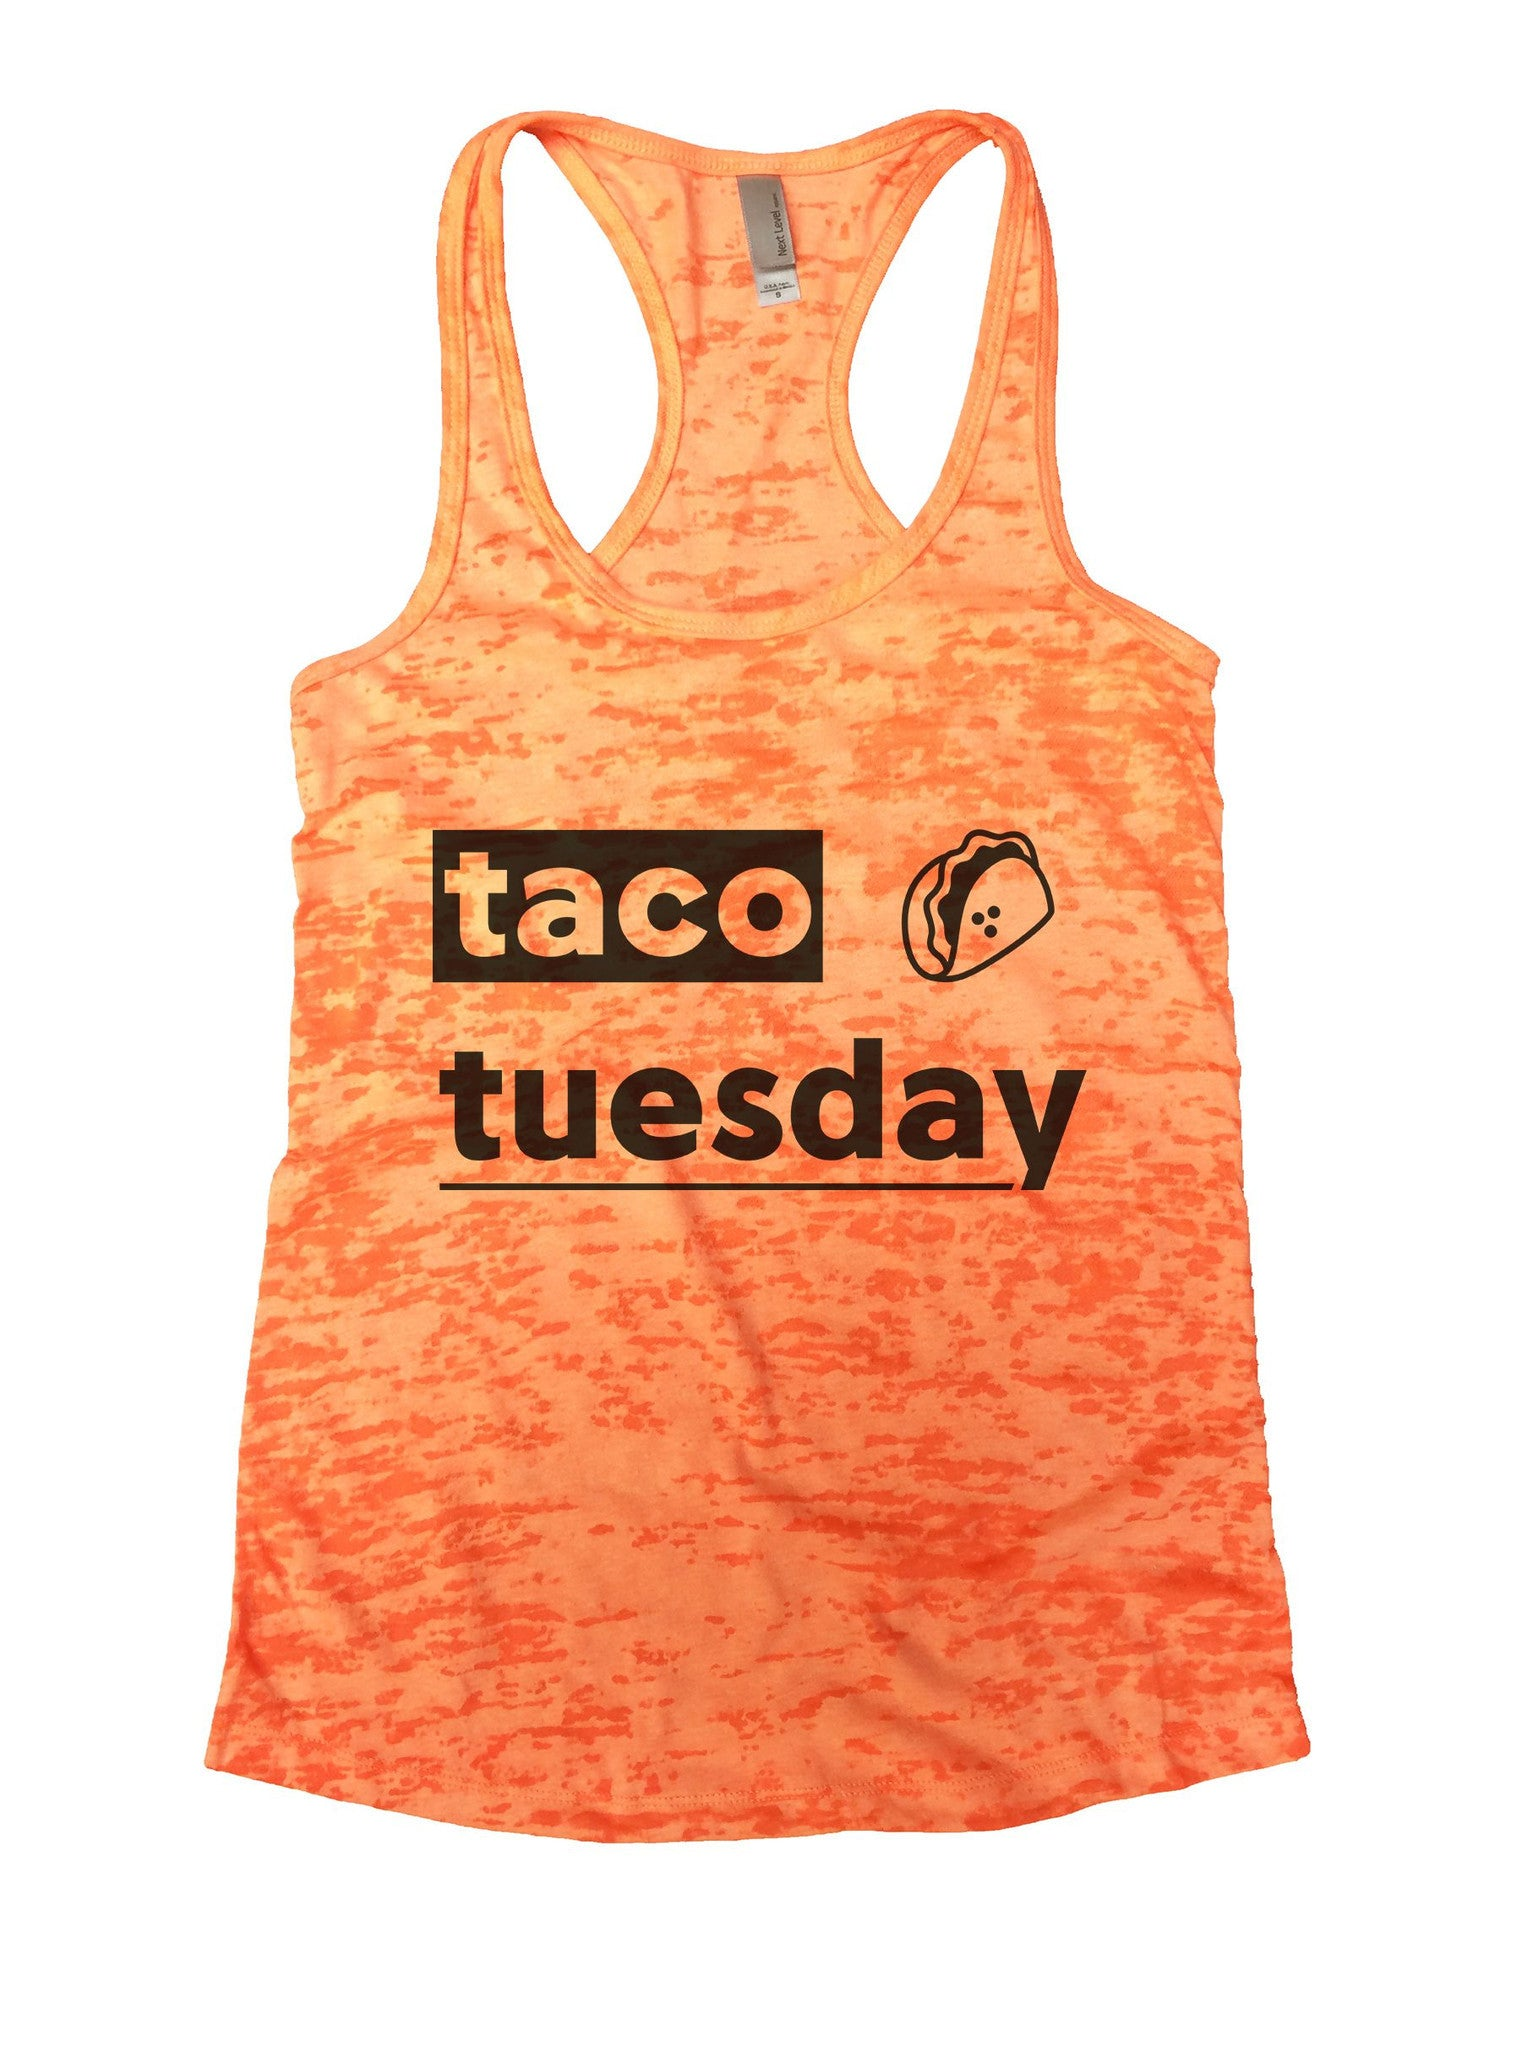 Taco Tuesday Burnout Tank Top By BurnoutTankTops.com - 1084 - Funny Shirts Tank Tops Burnouts and Triblends  - 7